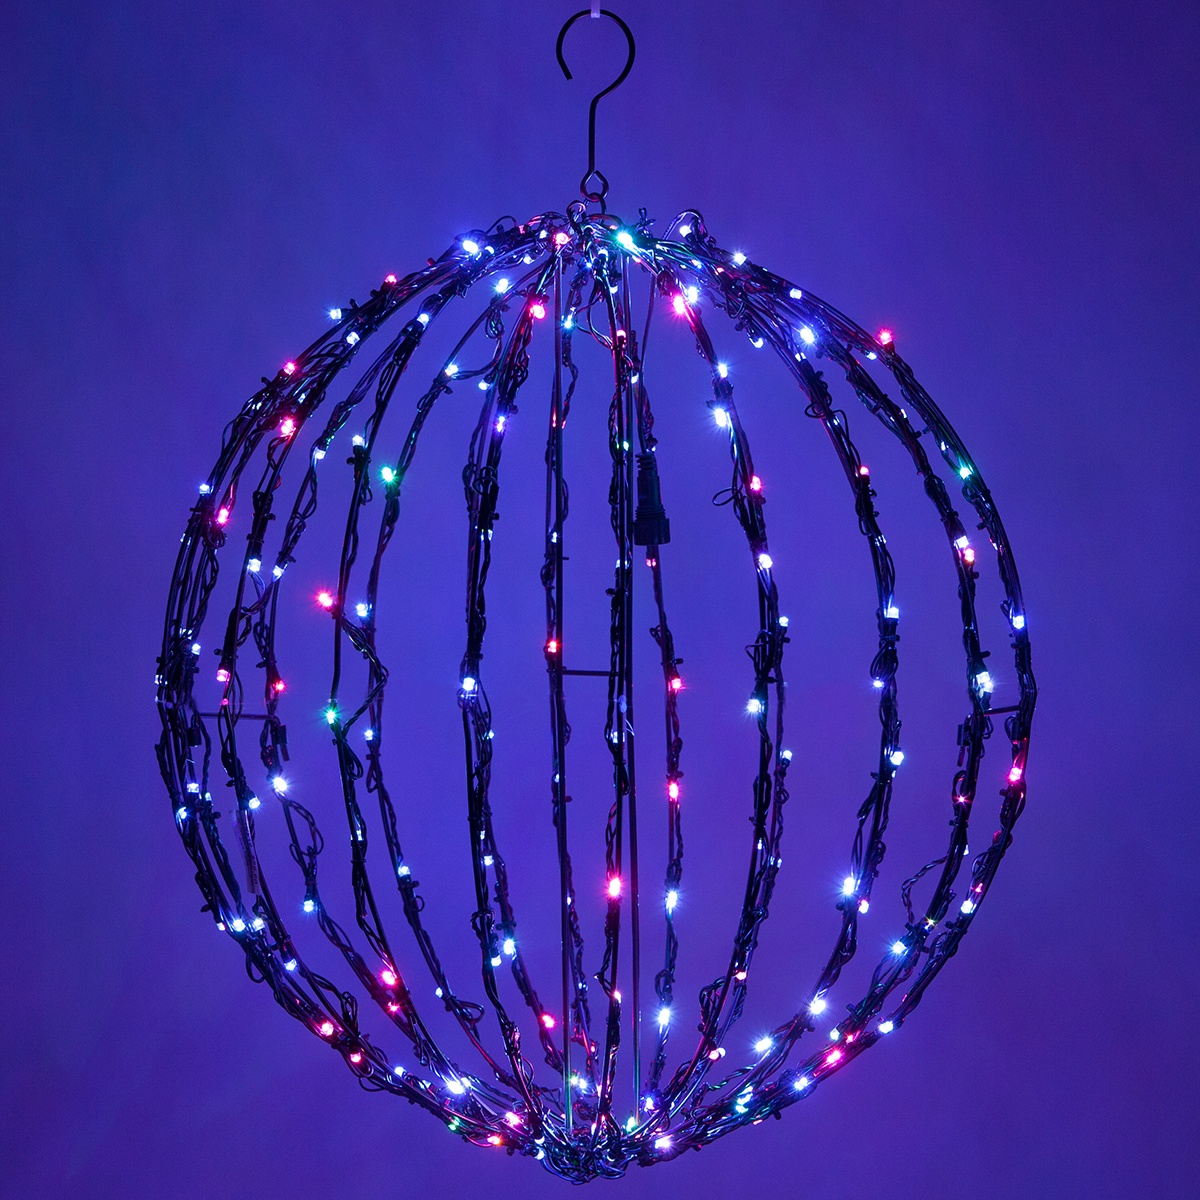 Rgb Led Christmas Lights.Rgb Led Multi Function Christmas Light Ball Fold Flat Black Frame